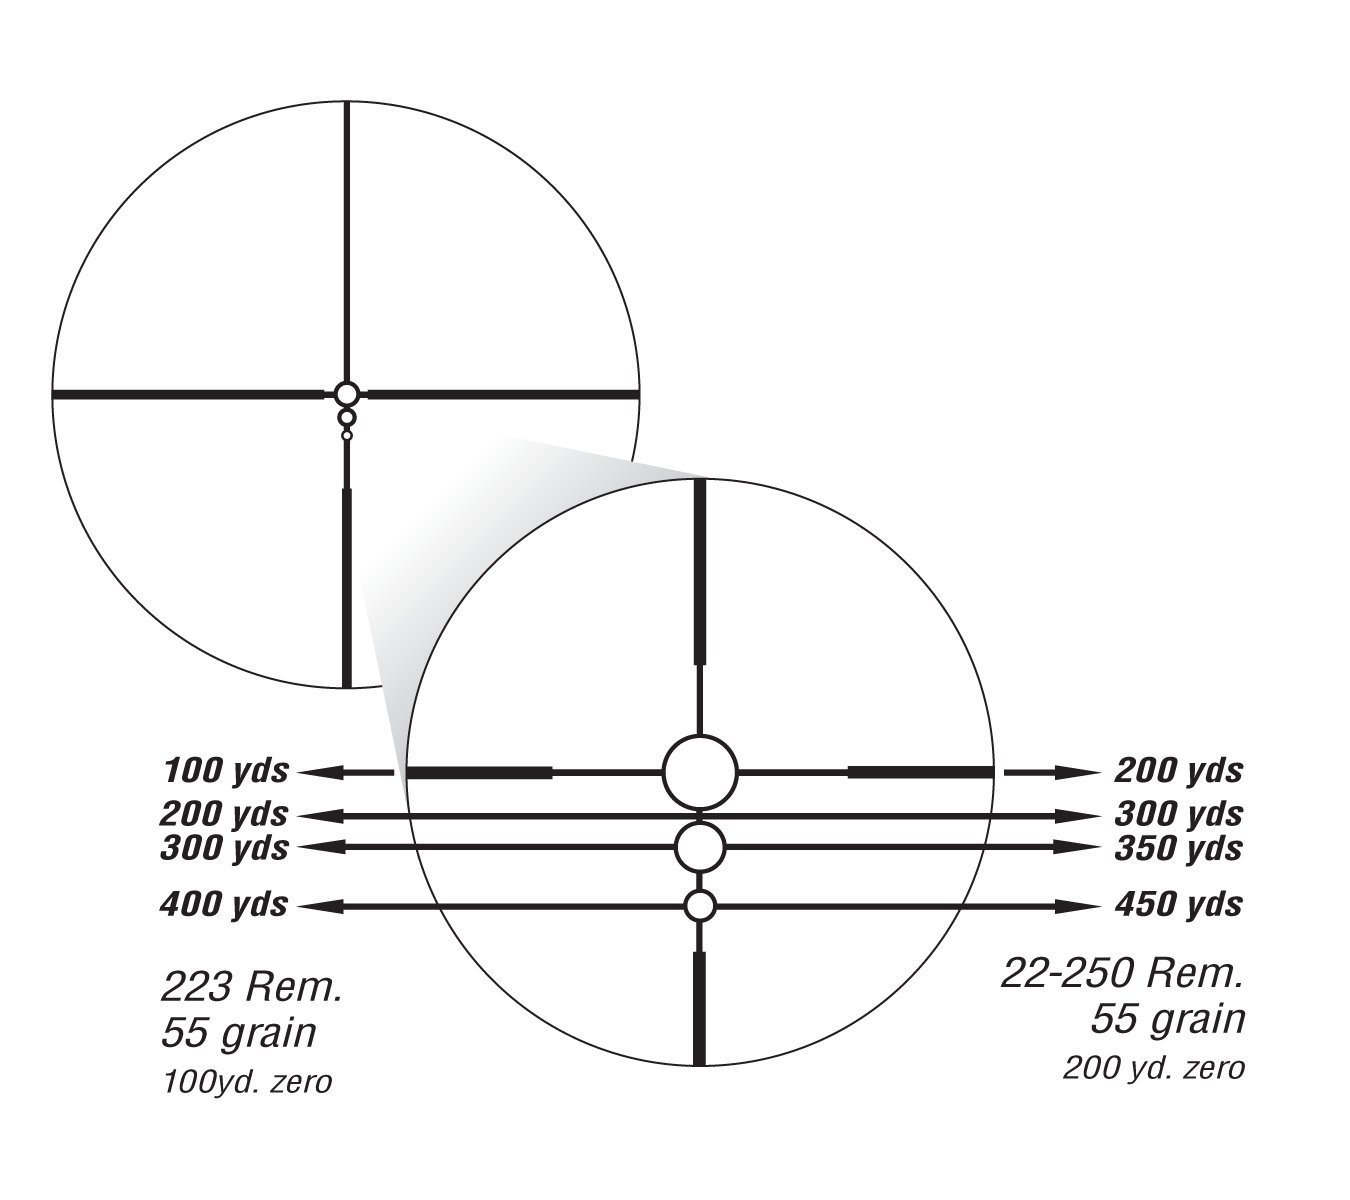 Coyote Target Diagram - Wiring Library •